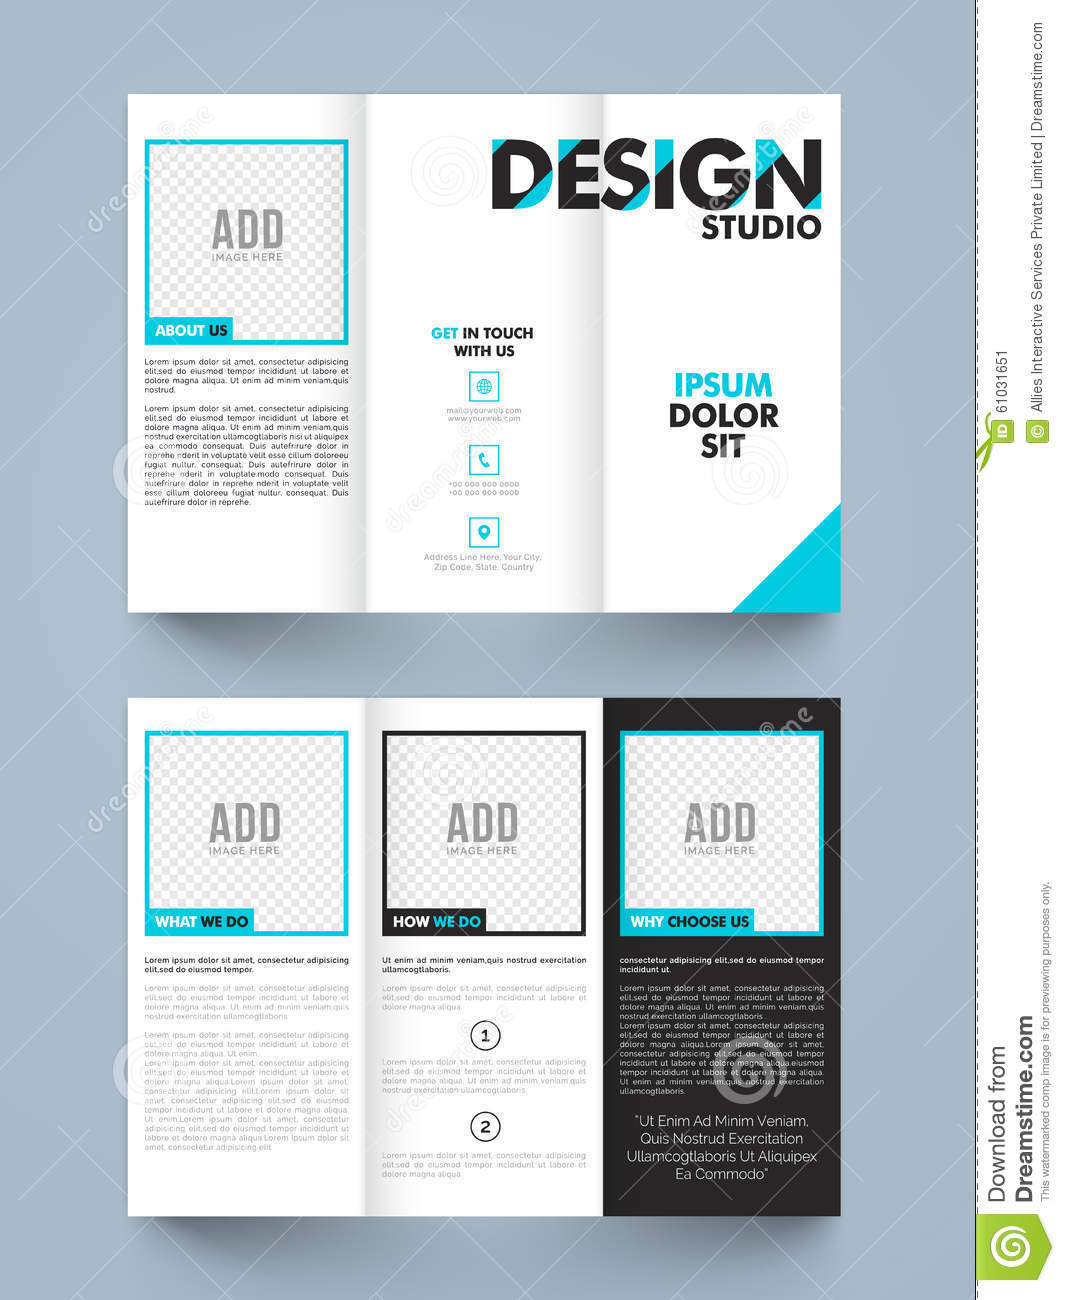 tri brochure templates free - stylish trifold or brochure design stock illustration